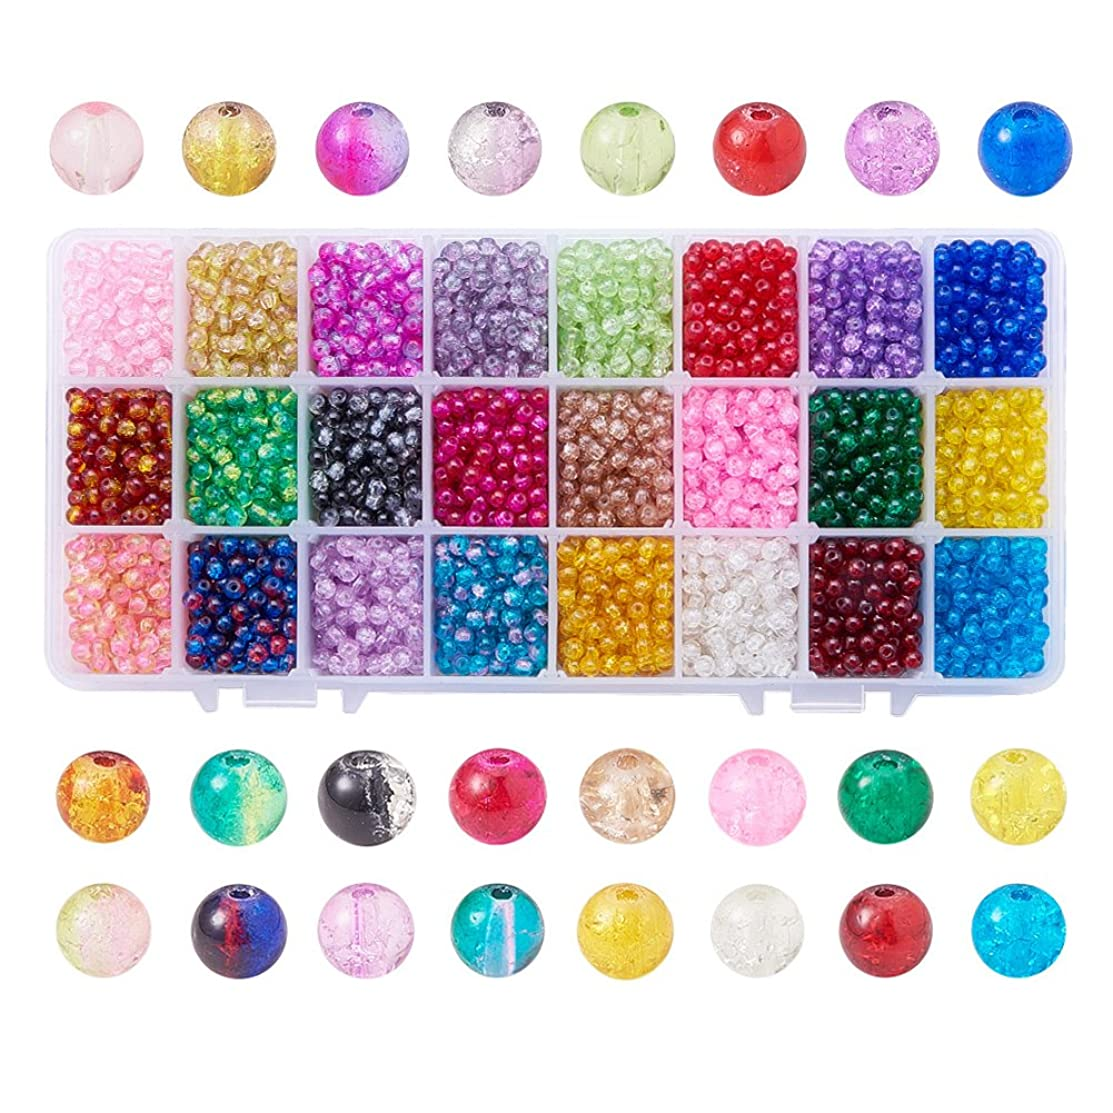 Pandahall Elite 1 Box (about 3600 pcs) 24 Color 4mm Handcrafted Crackle Lampwork Glass Round Beads Assortment Lot for Jewelry Making